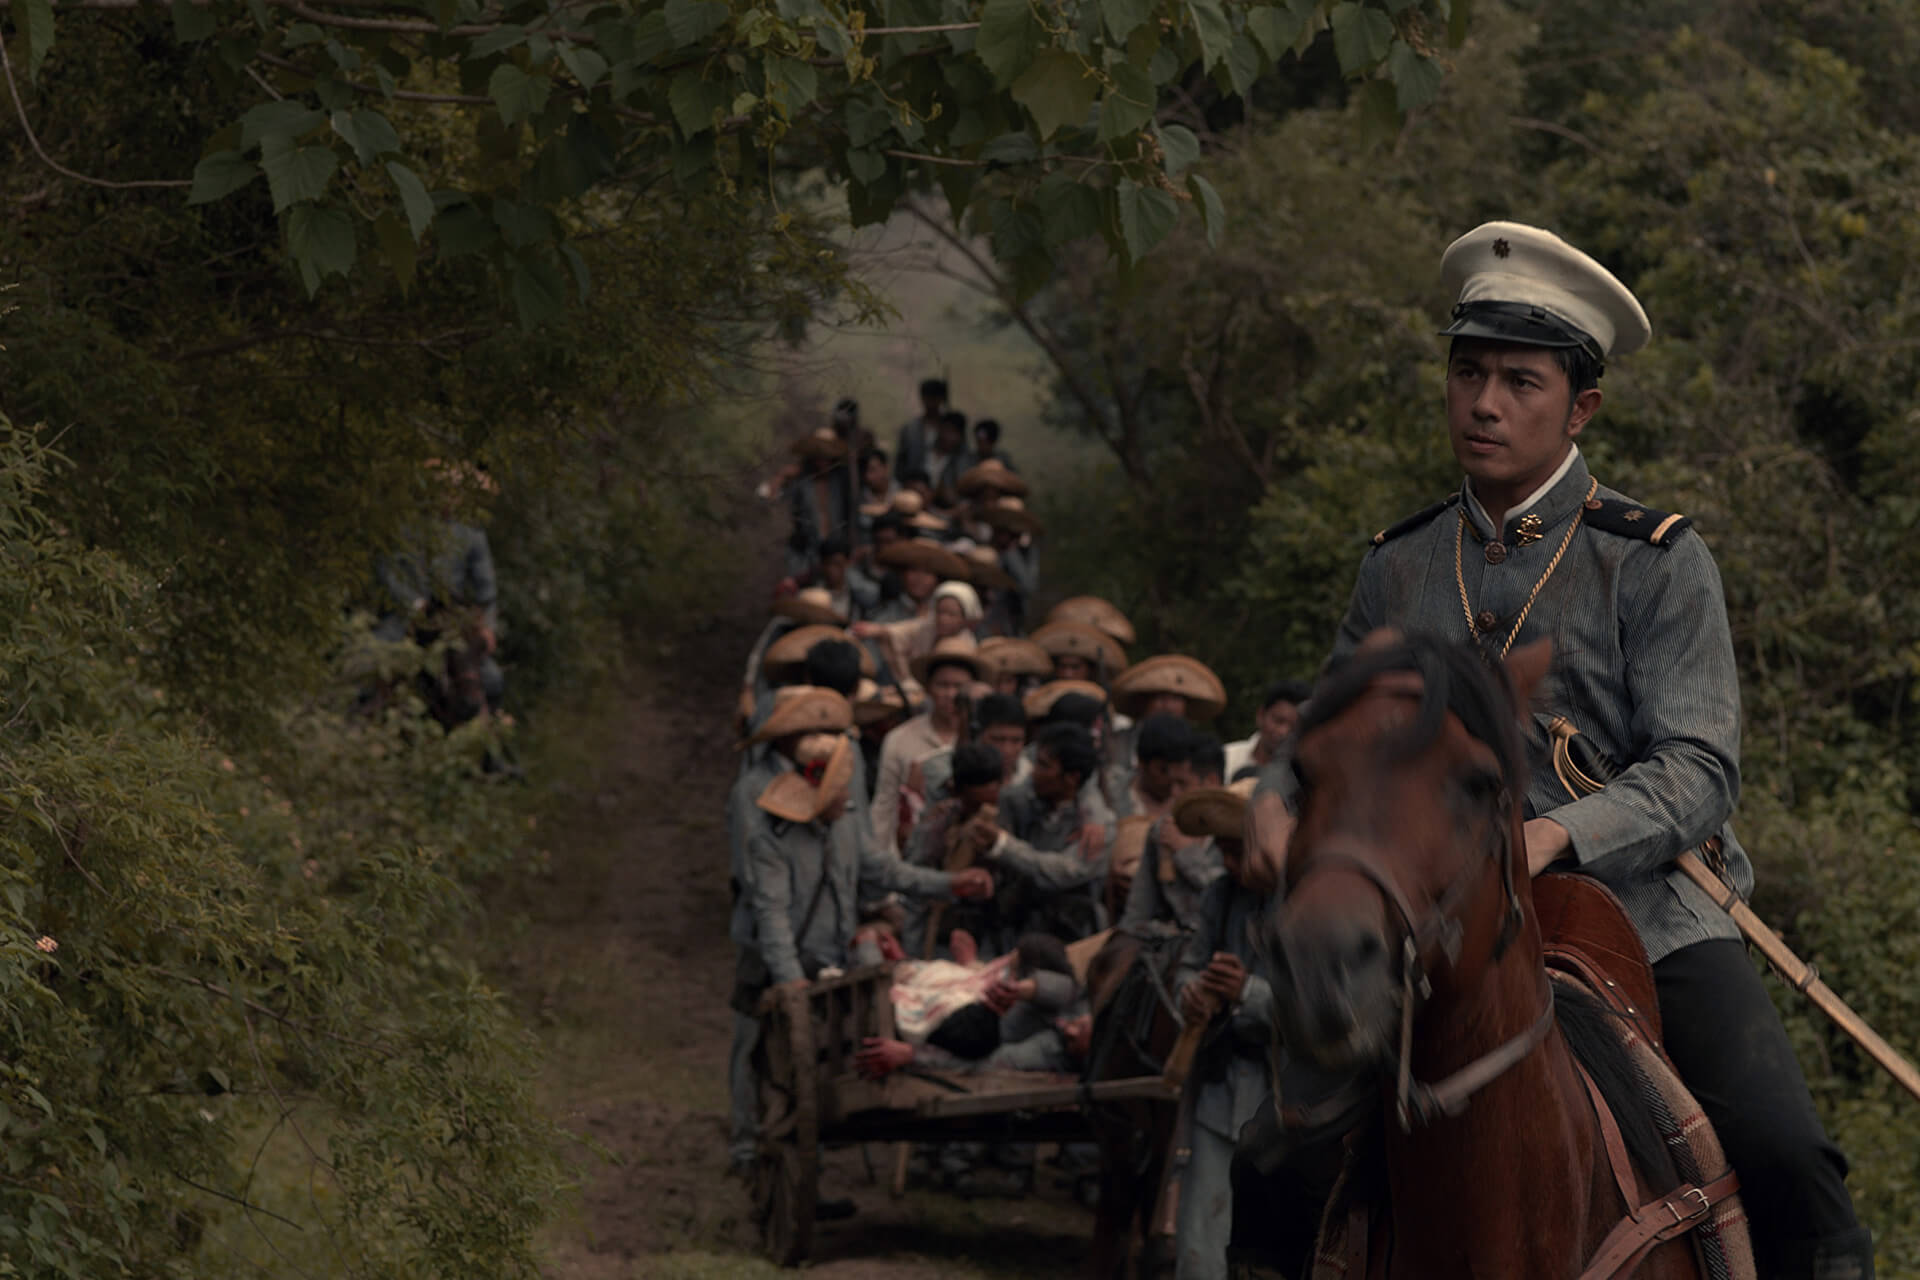 Lexter Tarriela tells about his experience setting up one of the biggest productions in Philippine cinema, the historical epic Goyo: Ang Batang Heneral (2018).